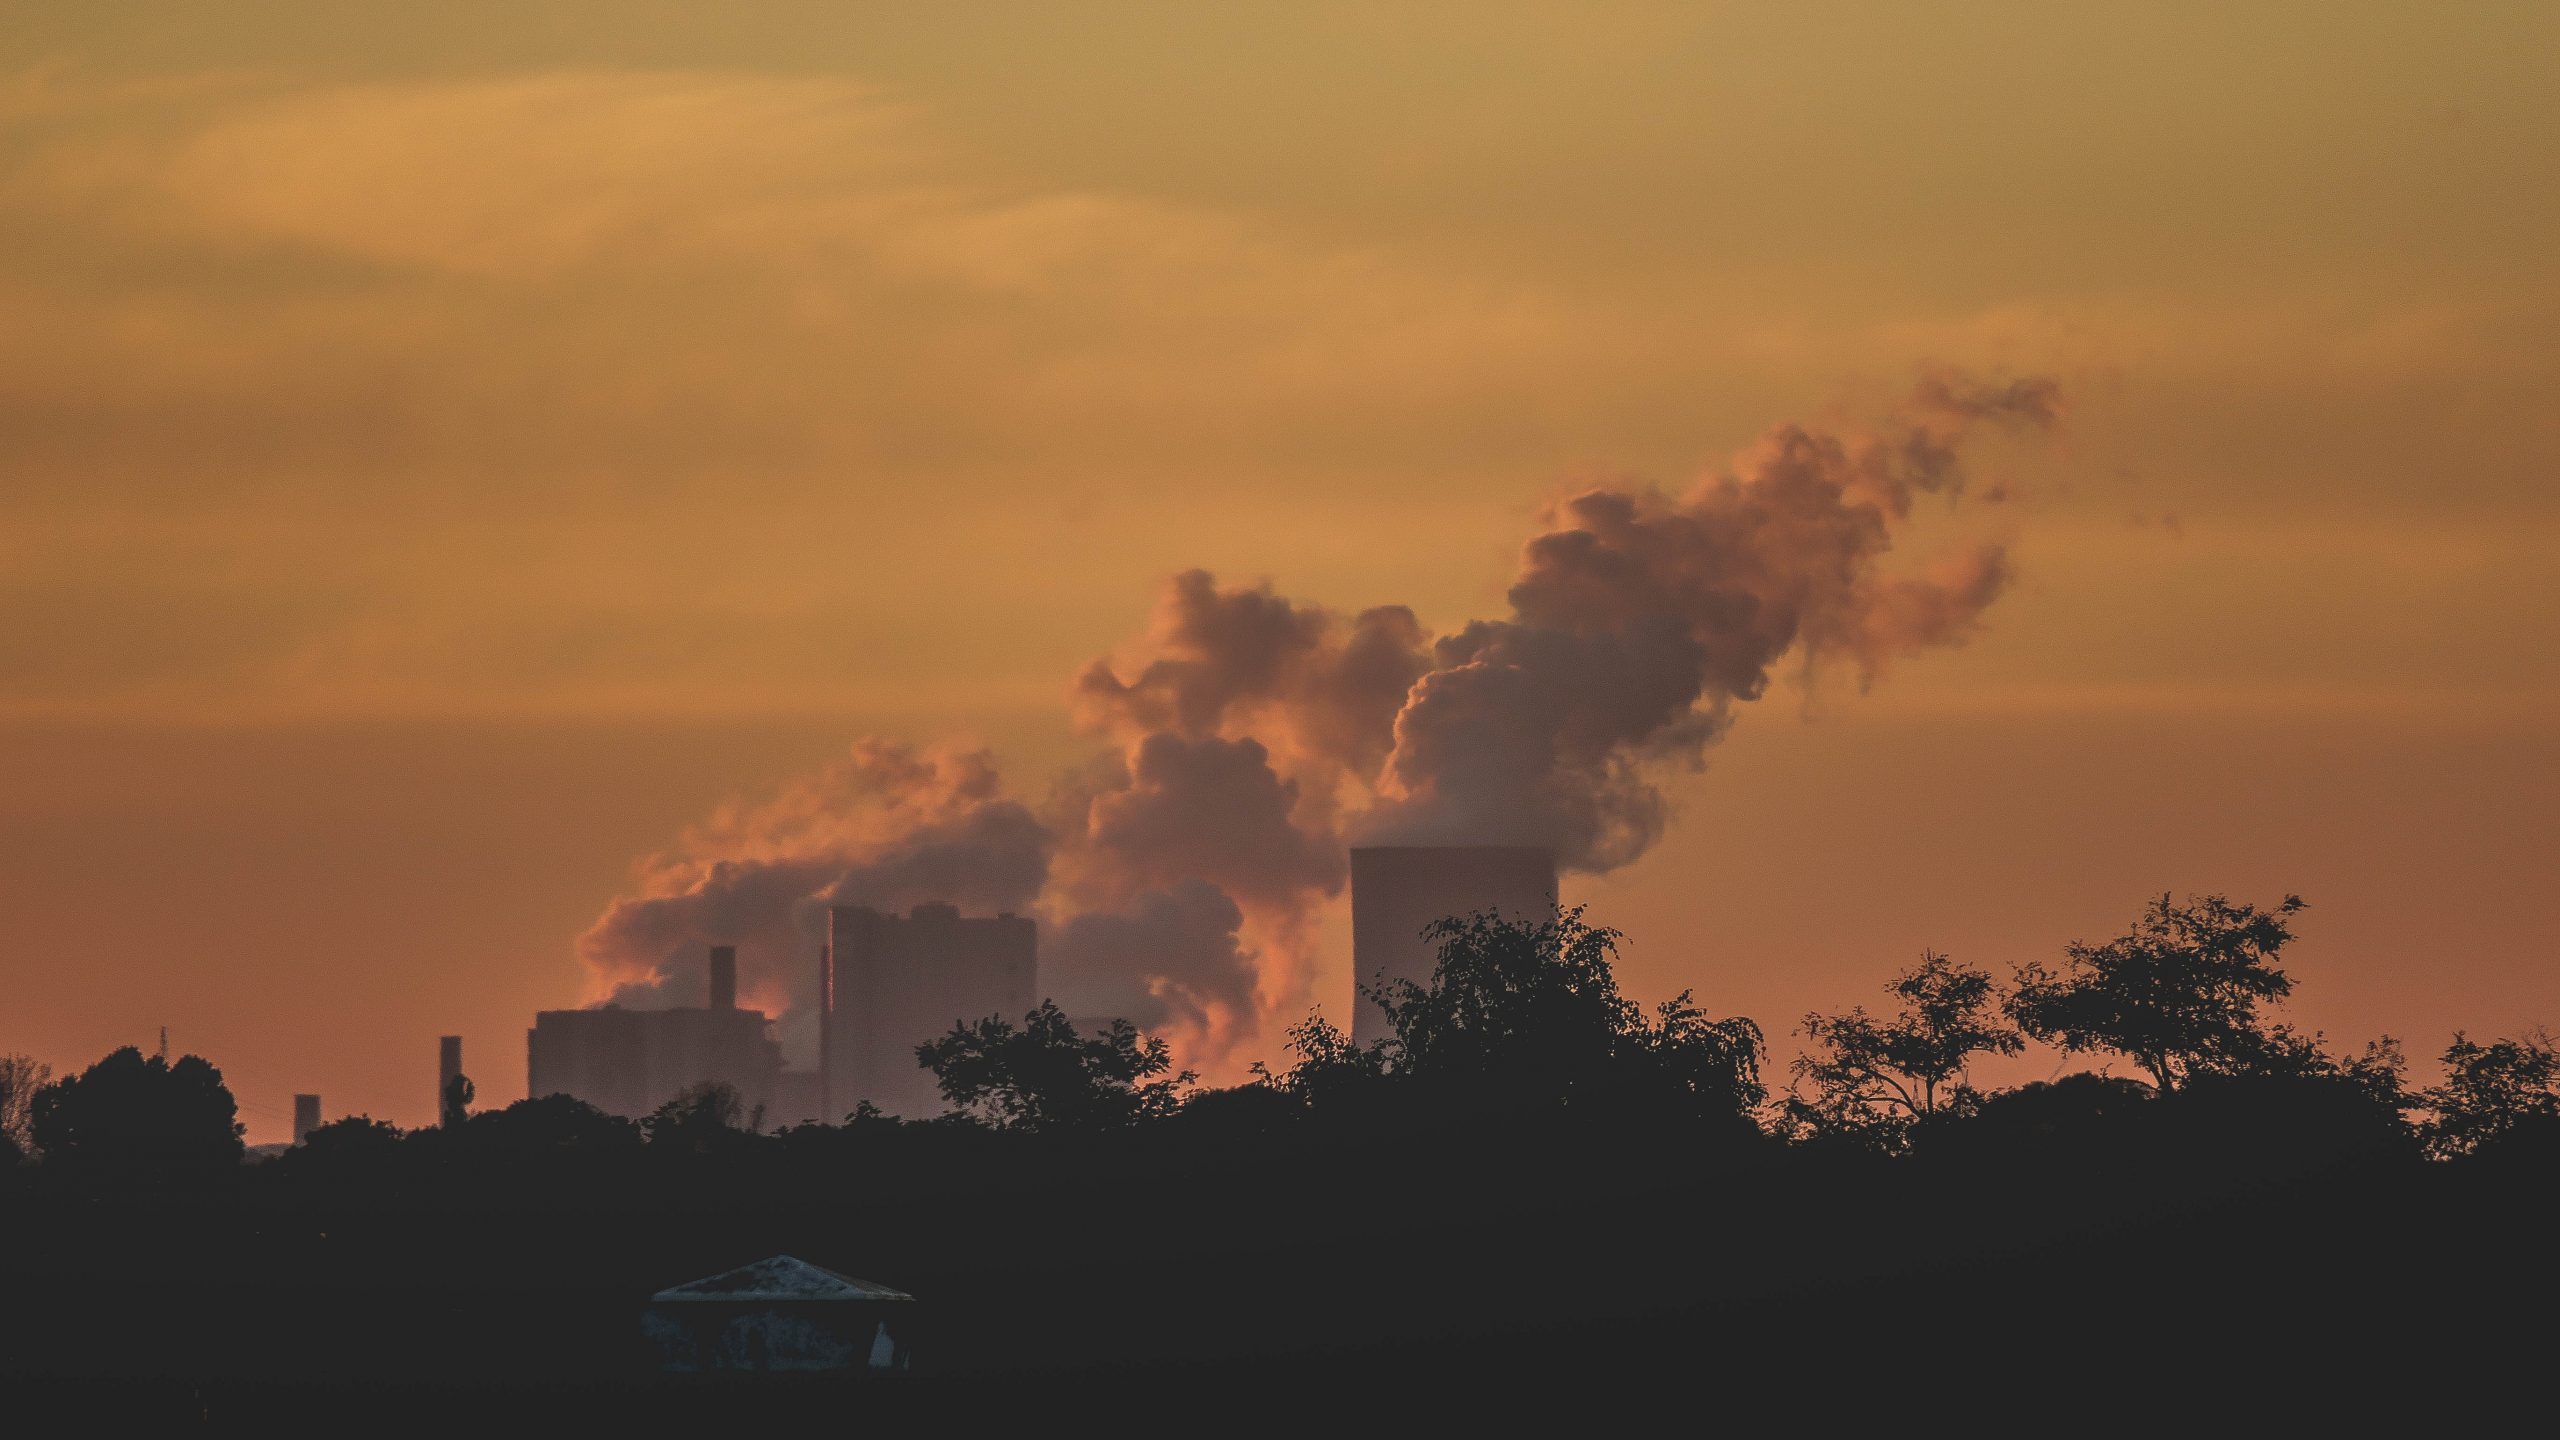 How Students Can Help Reduce Environmental Pollution